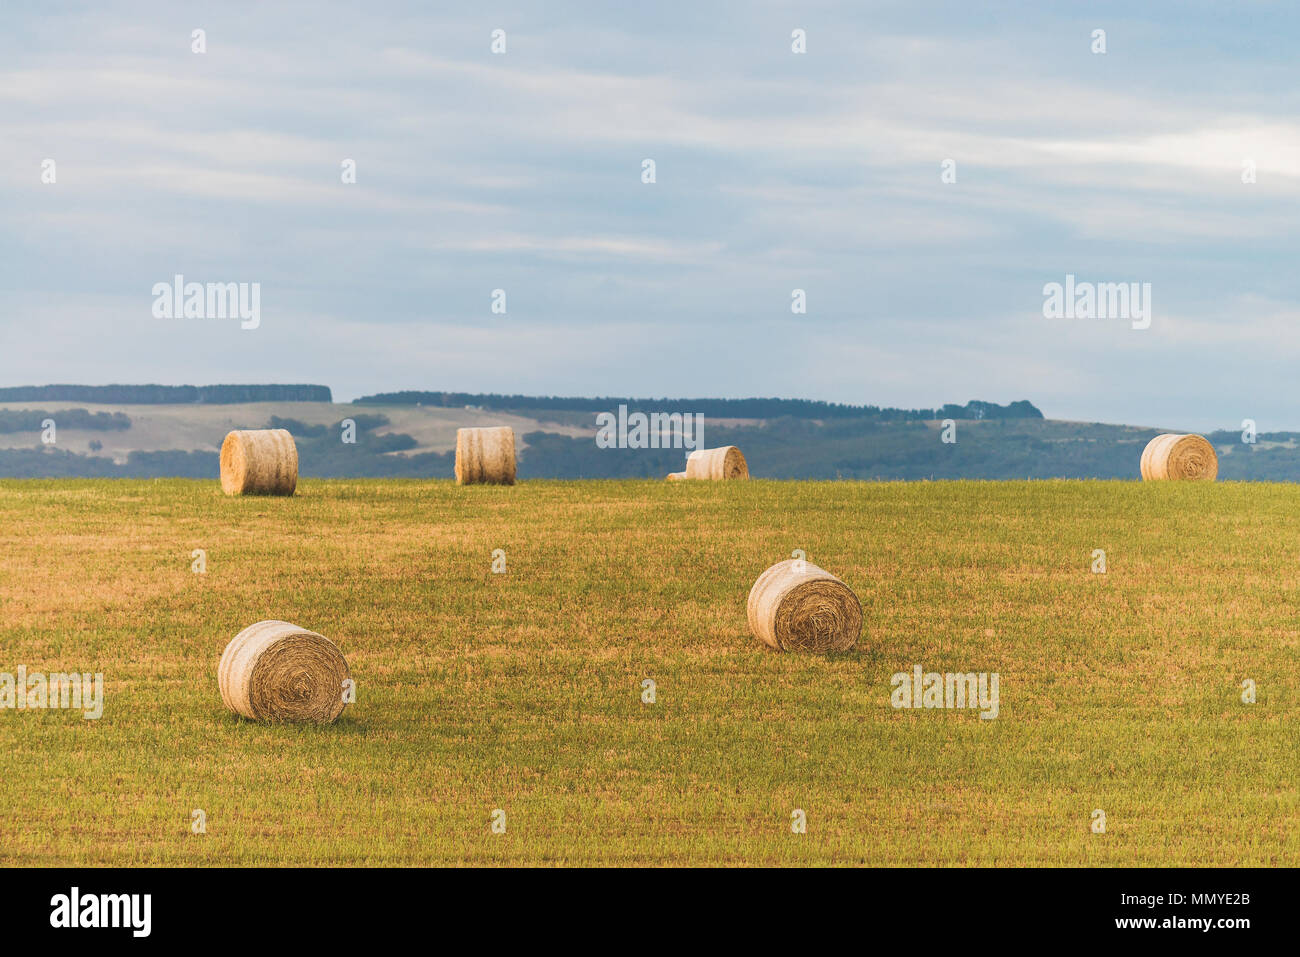 Round hay bales on the field after harvest for feeding cattle in McLaren Vale, South Australia Stock Photo